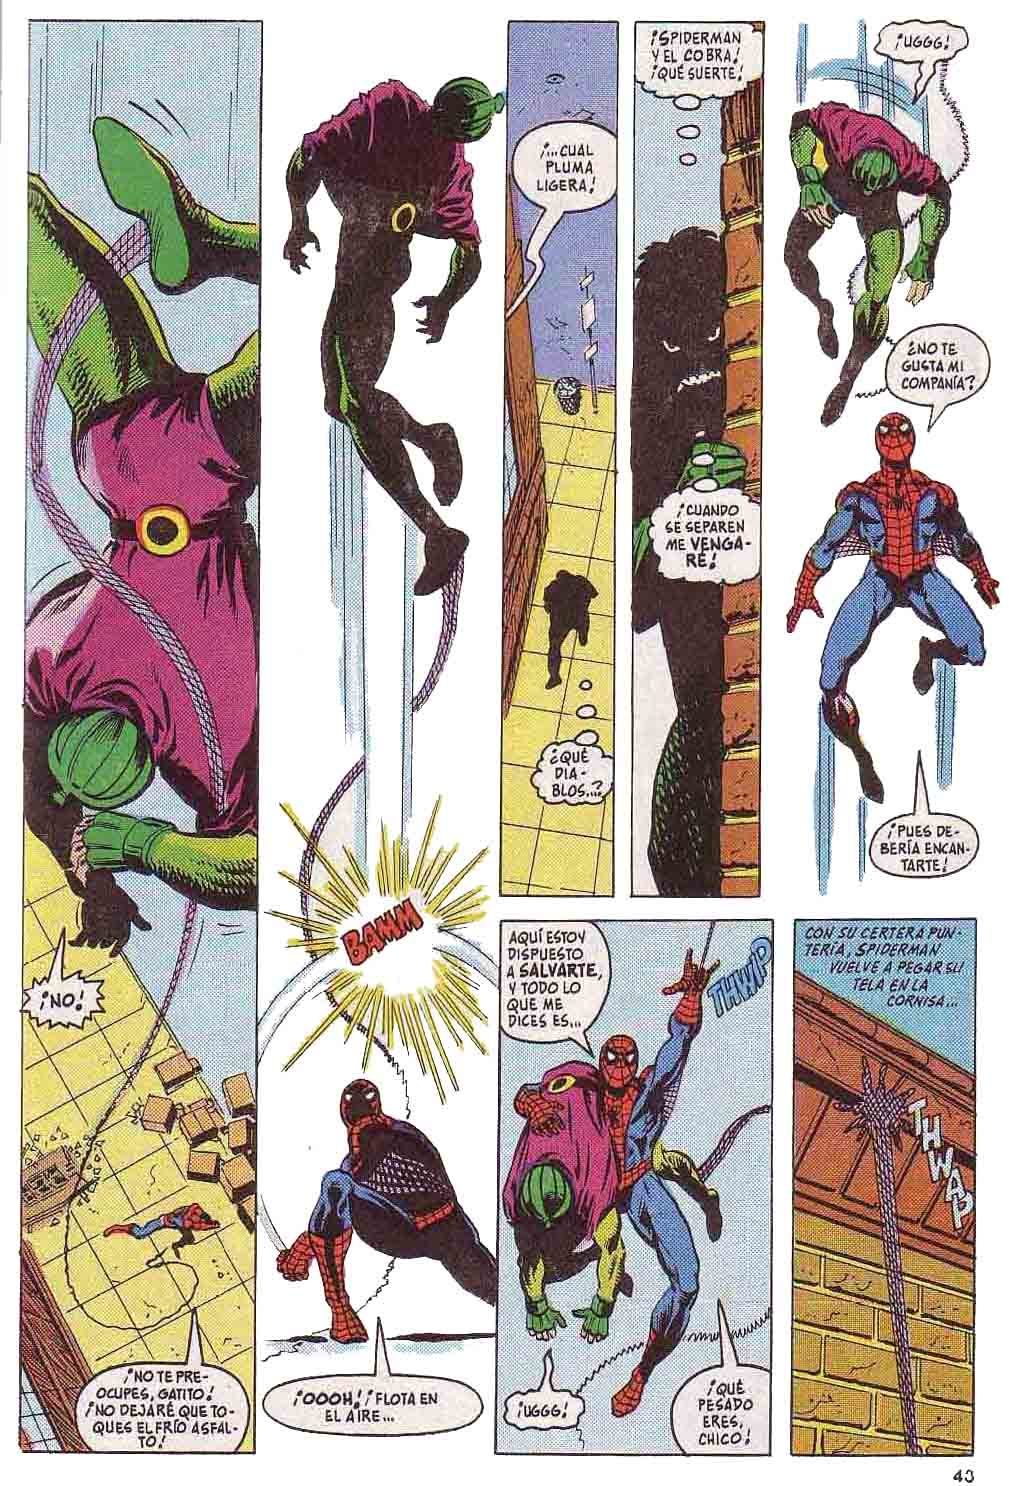 The Amazing Spider-Man #231